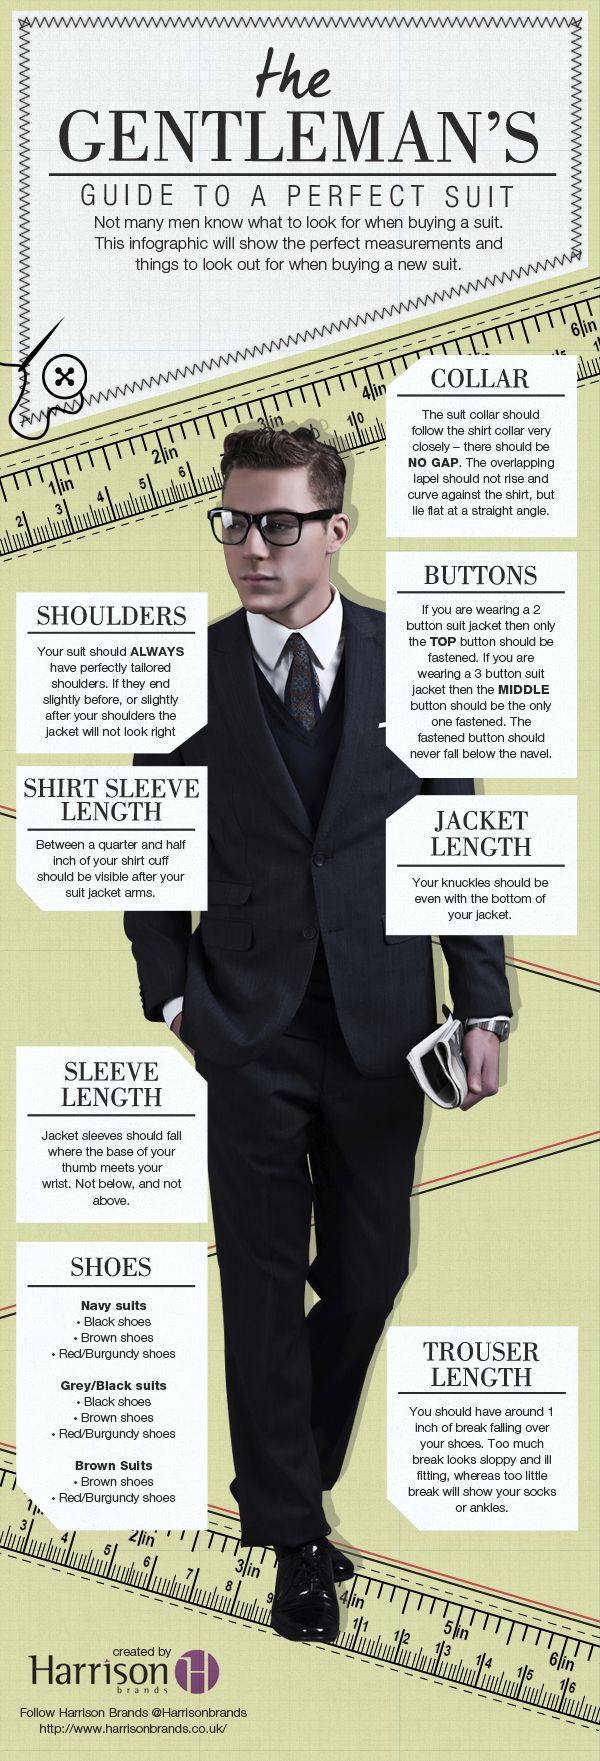 The Gentleman's Guide To Buying A Perfect Suit with Harrison Brands